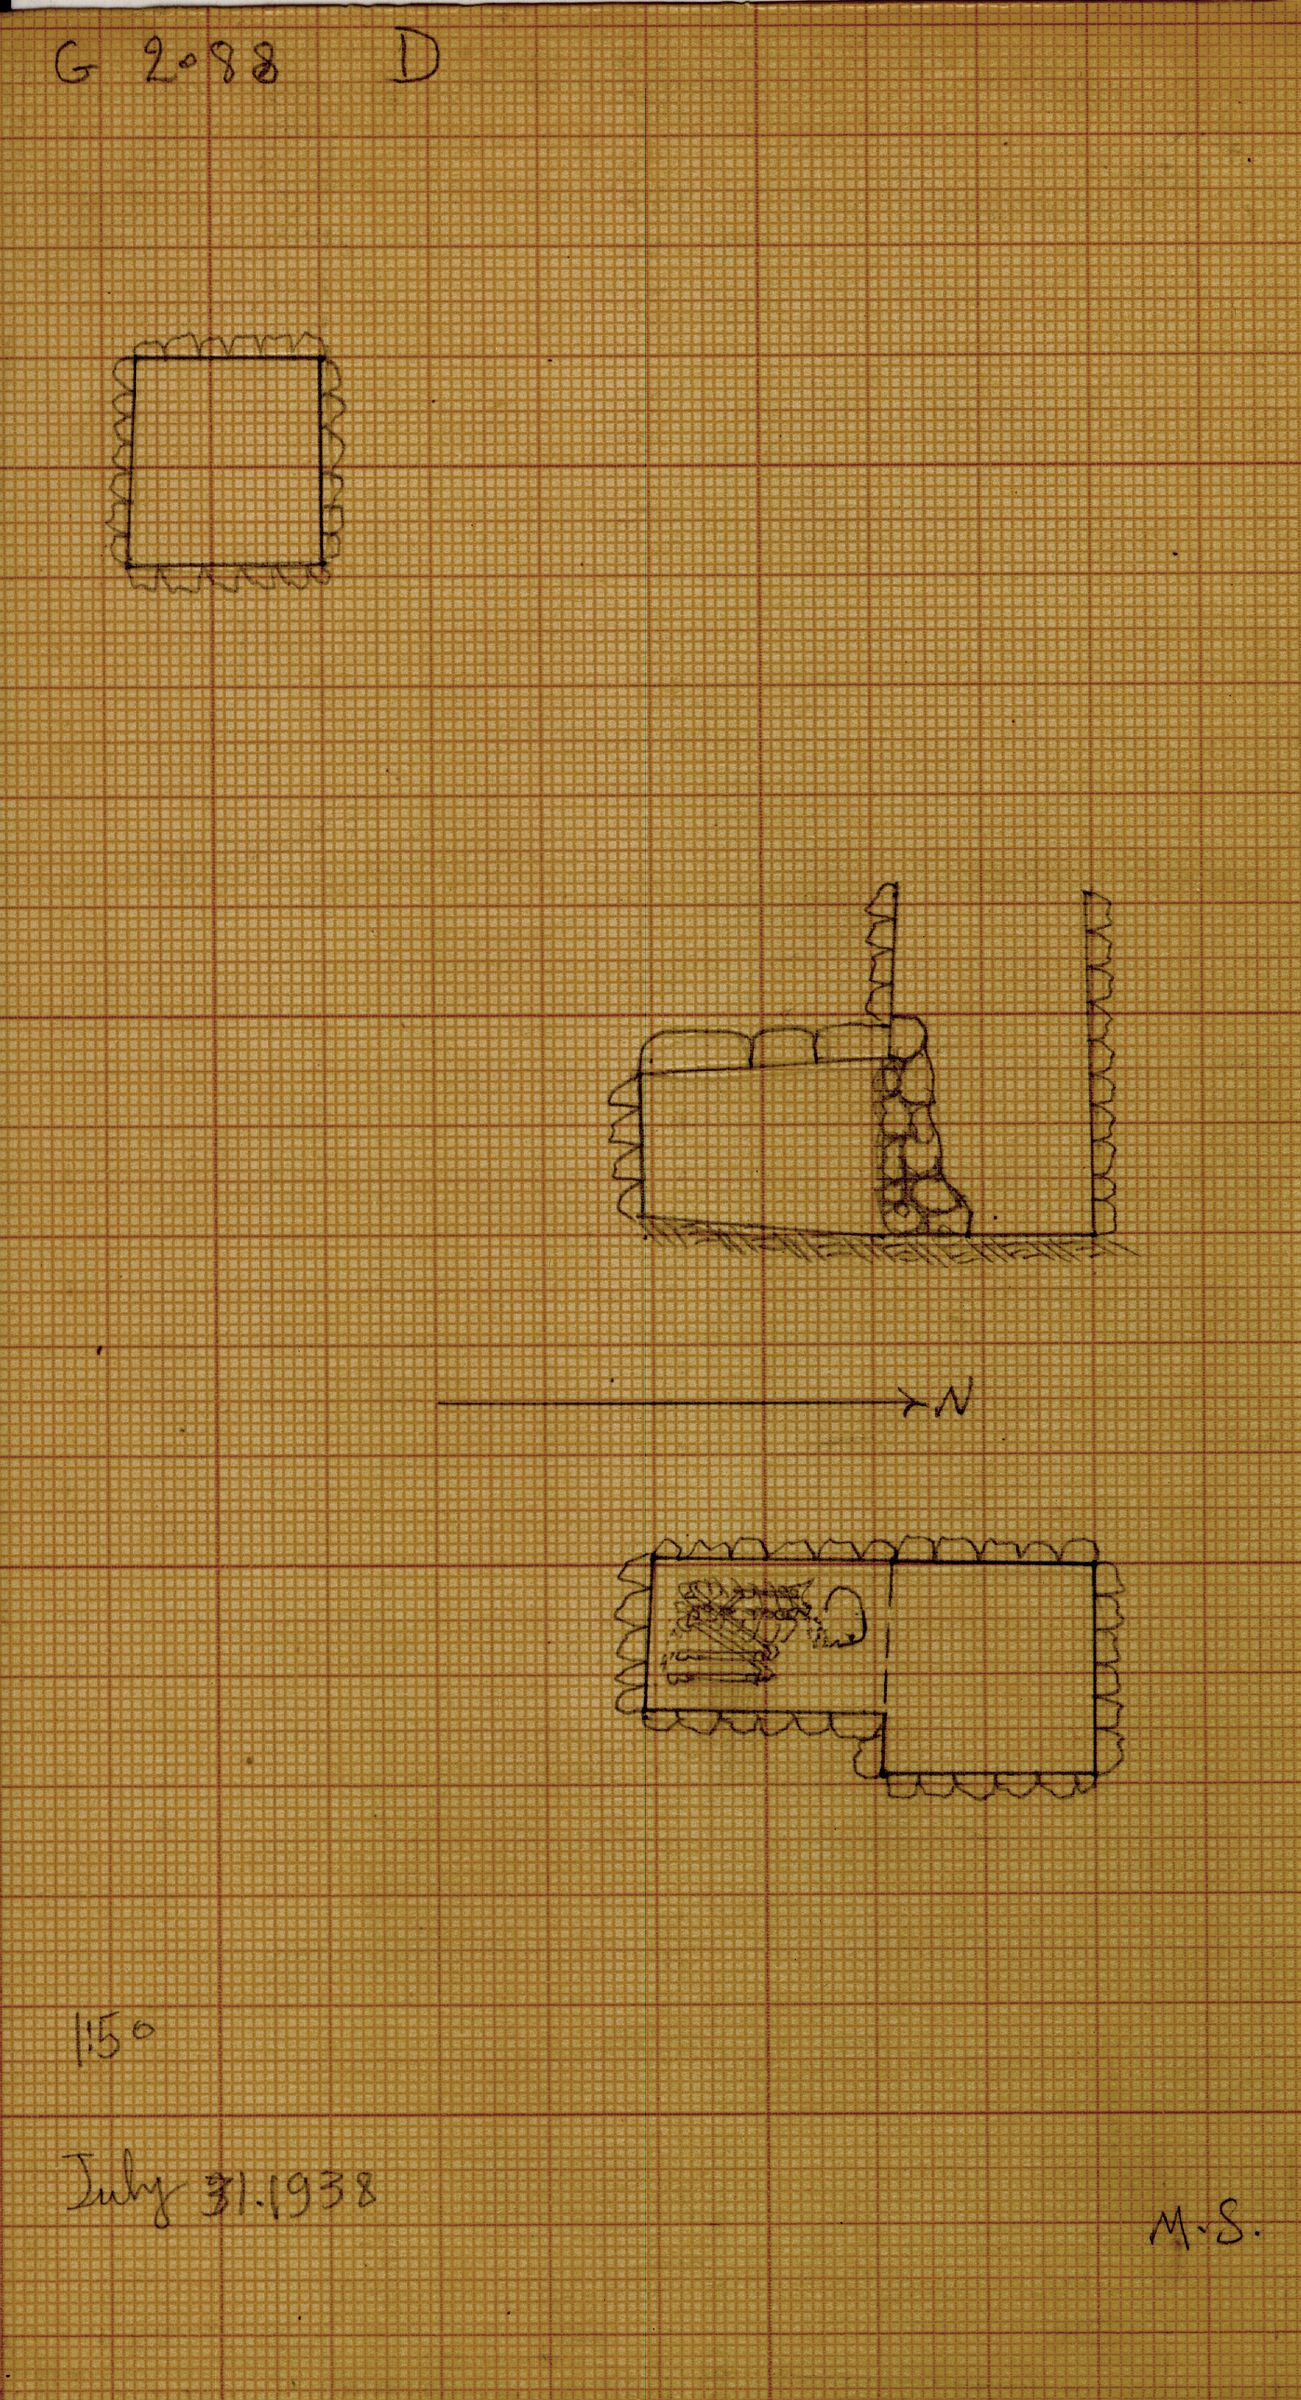 Maps and plans: G 2088, Shaft D